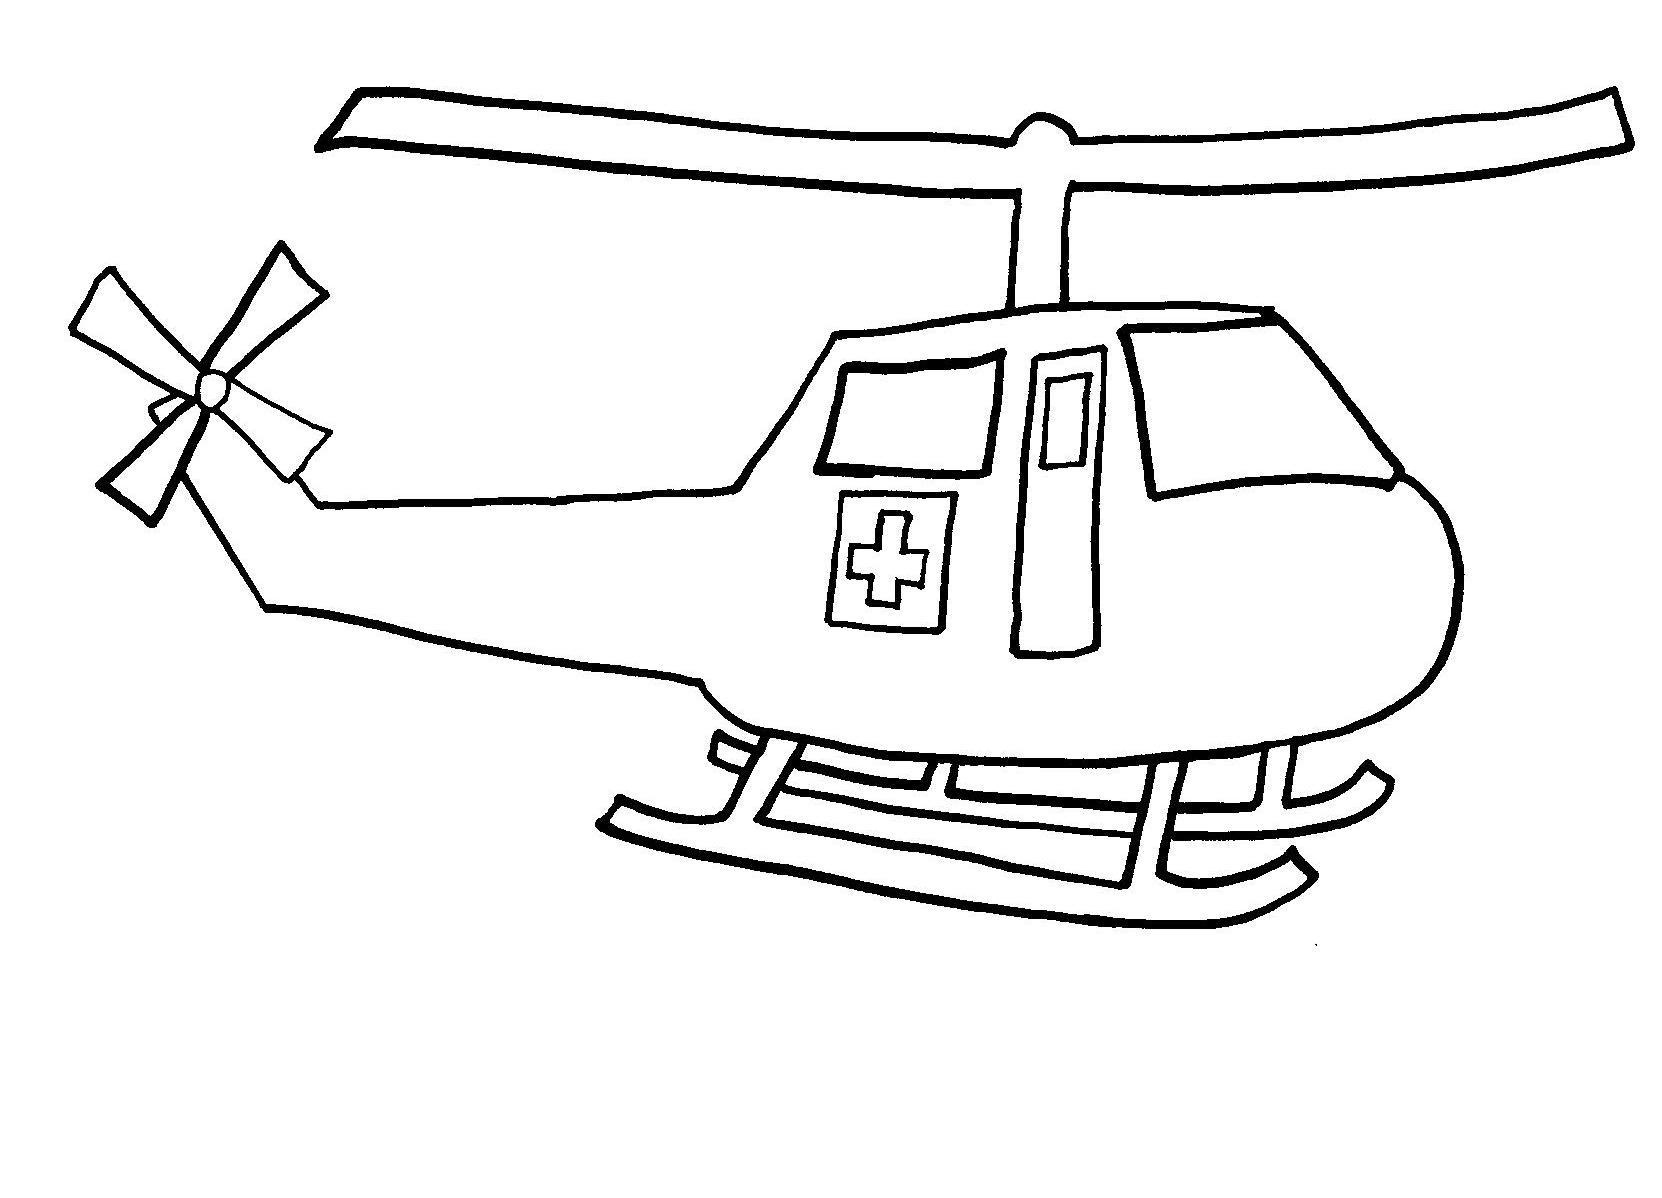 Volcano coloring pages to print - Helicopter Coloring Pages To Print